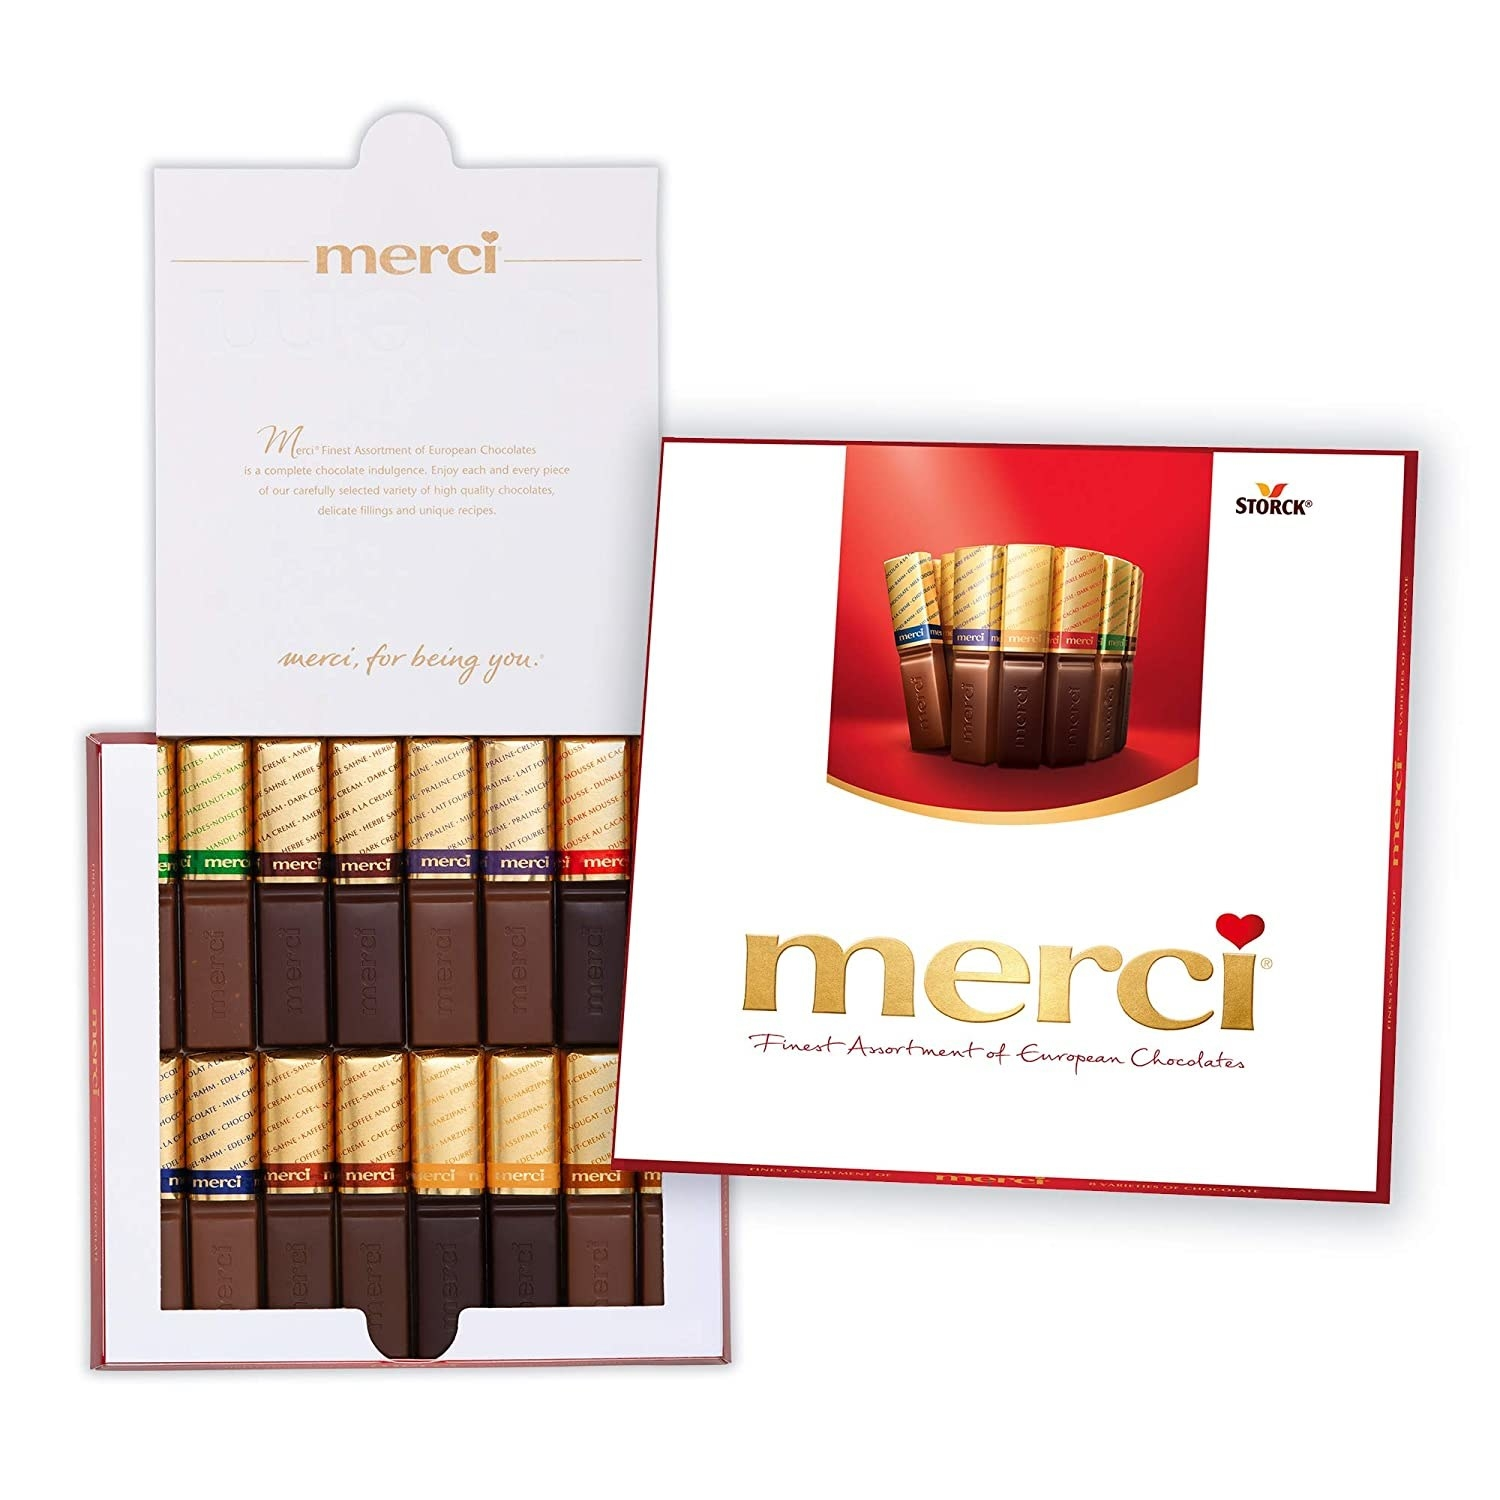 """Small rectangular pieces of chocolate in a white box that says """"merci"""""""